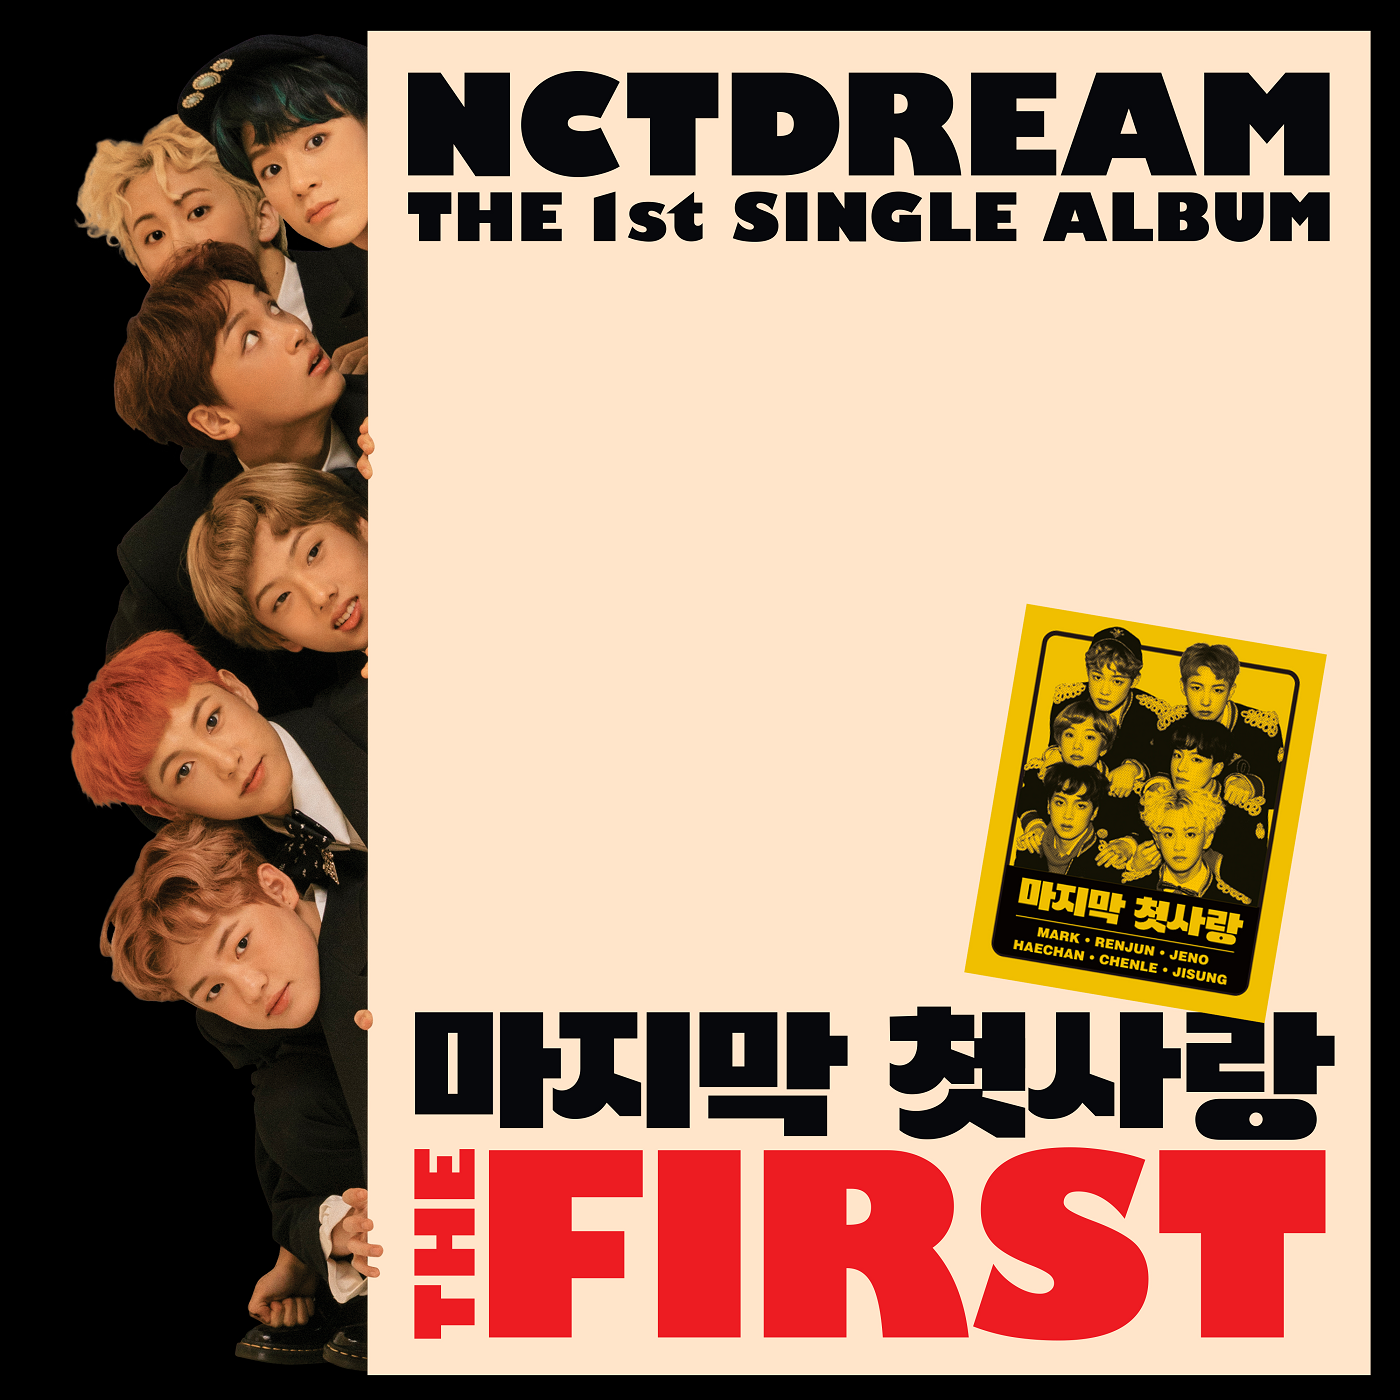 Nct dream 1st single album the first